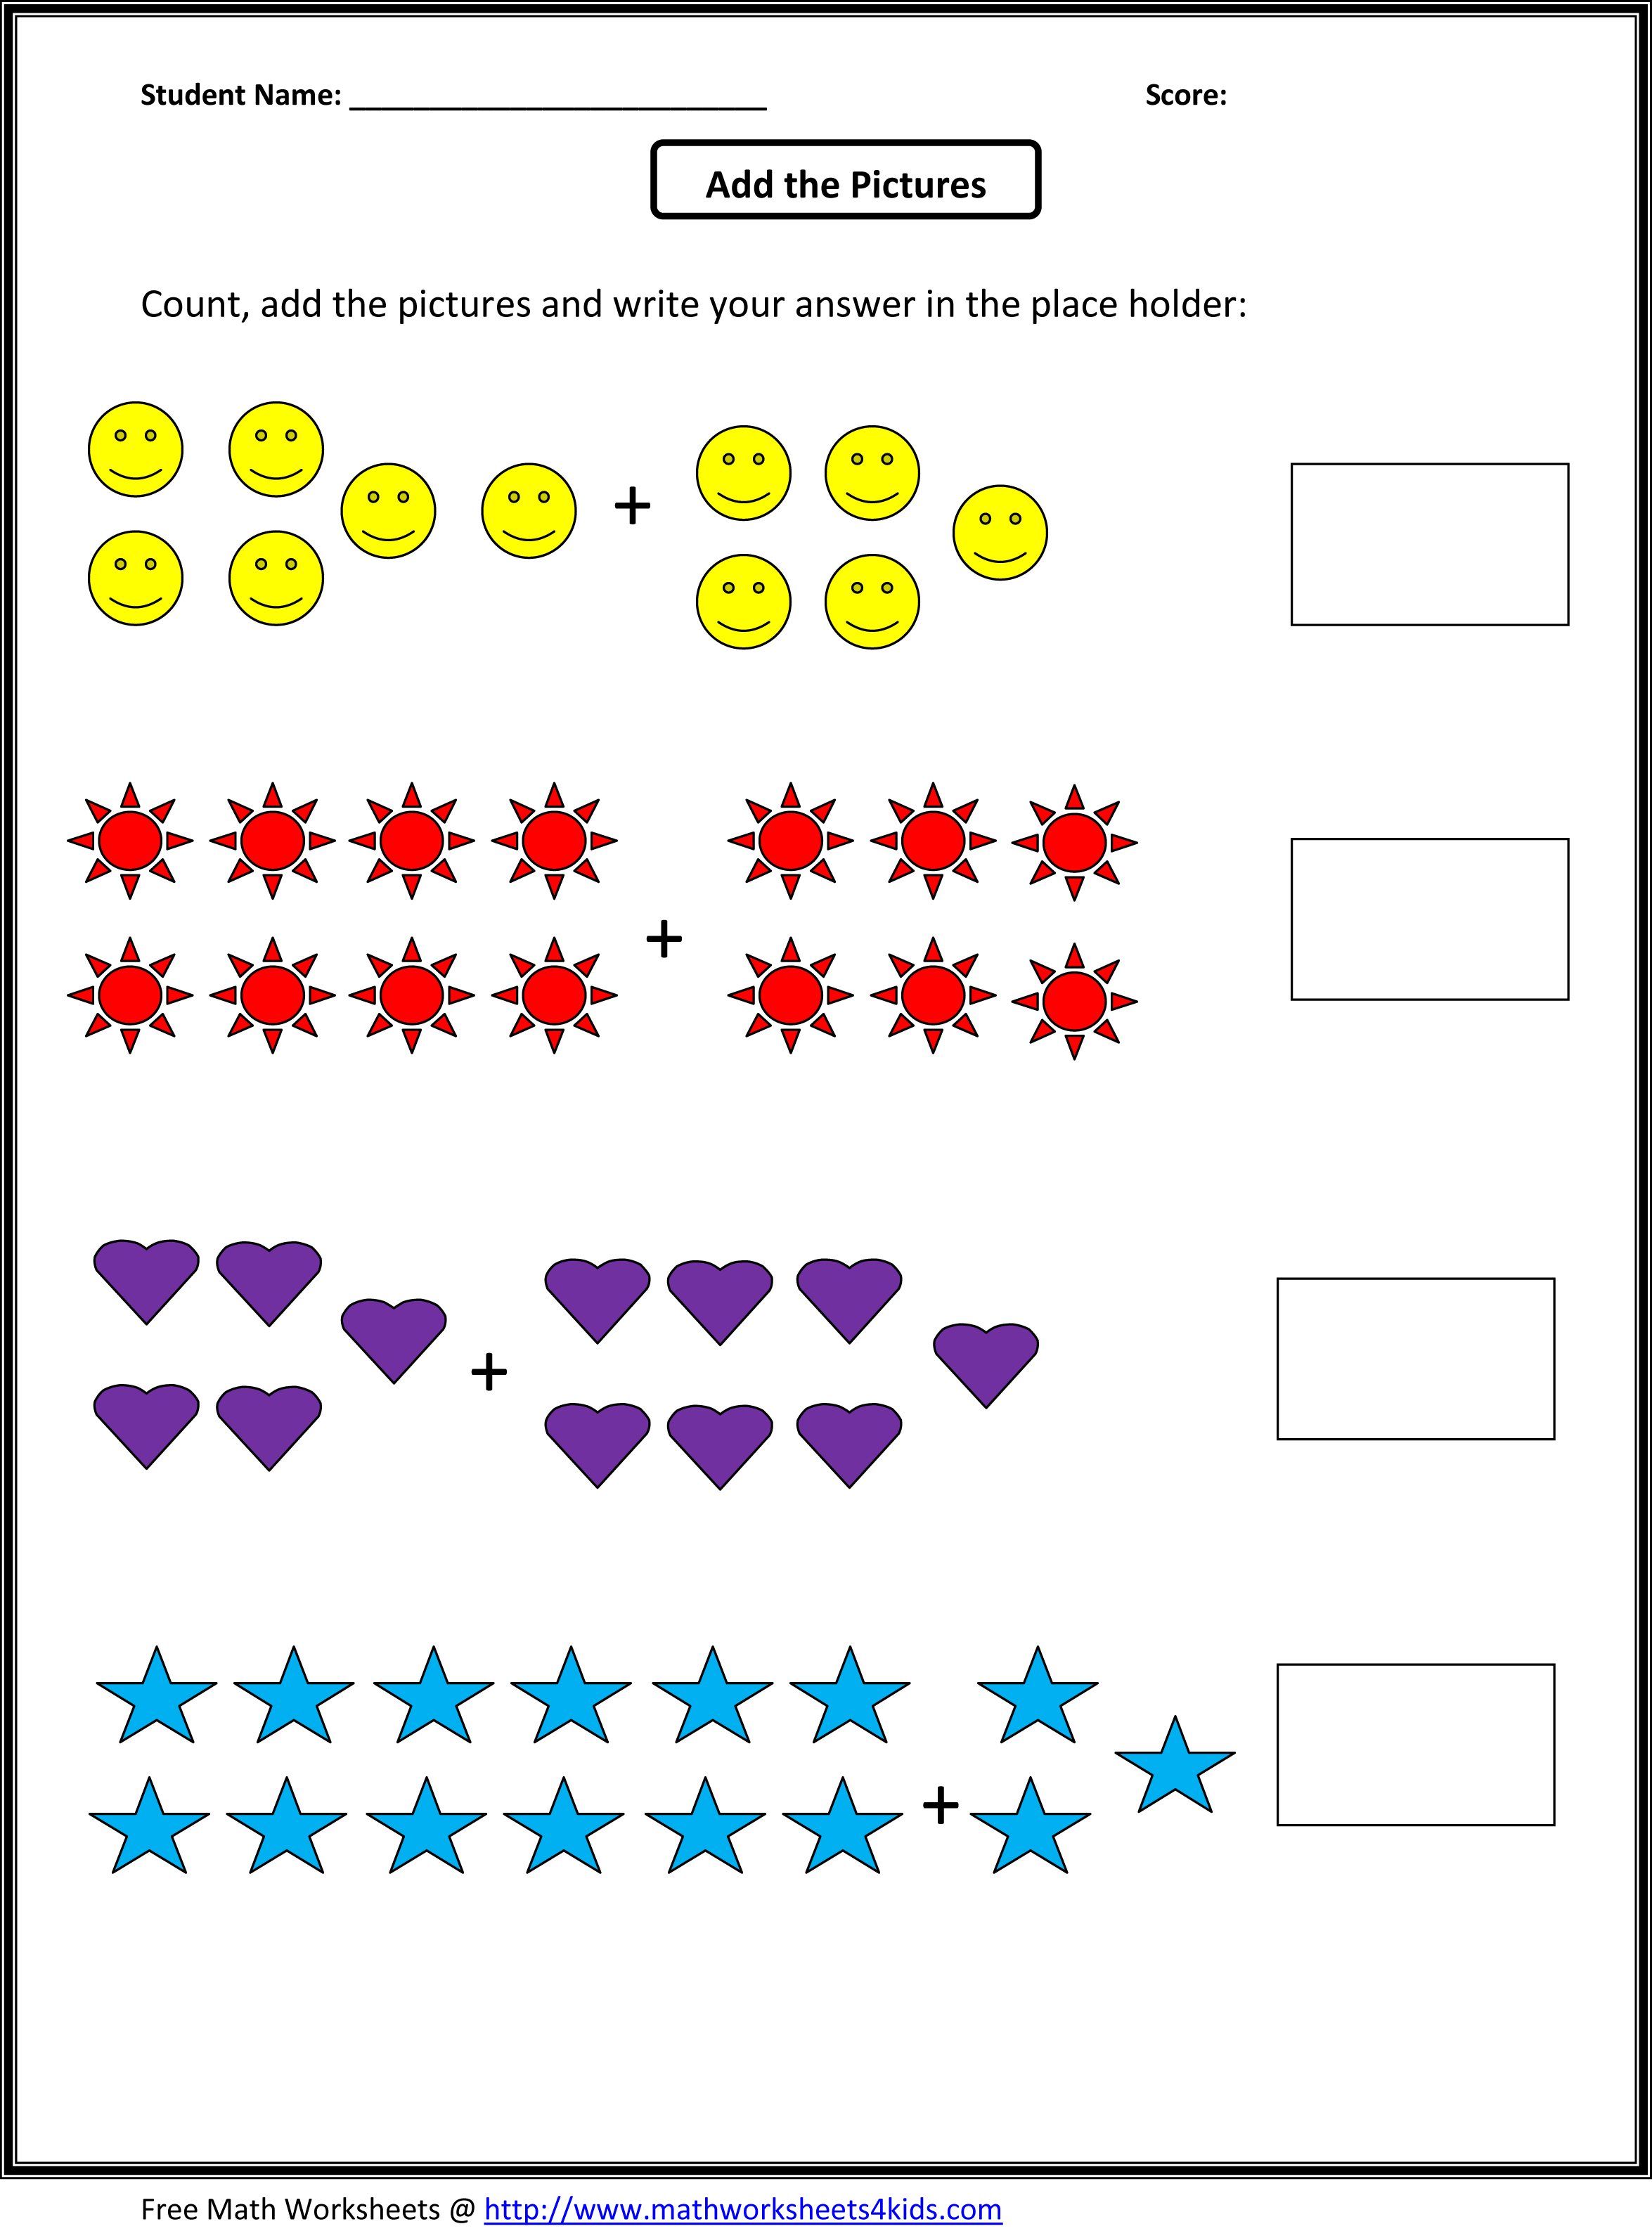 Weirdmailus  Surprising Grade  Maths Worksheet  Reocurent With Lovely Math Worksheets For St Grade Free  Reocurent With Astonishing Th Grade Health Worksheets Also Setting Of A Story Worksheets In Addition Grid Worksheets And Arithmetic Sequence Worksheets As Well As Perimeter Of Irregular Shapes Worksheet Additionally Lcm Word Problems Worksheet From Reocurentcom With Weirdmailus  Lovely Grade  Maths Worksheet  Reocurent With Astonishing Math Worksheets For St Grade Free  Reocurent And Surprising Th Grade Health Worksheets Also Setting Of A Story Worksheets In Addition Grid Worksheets From Reocurentcom